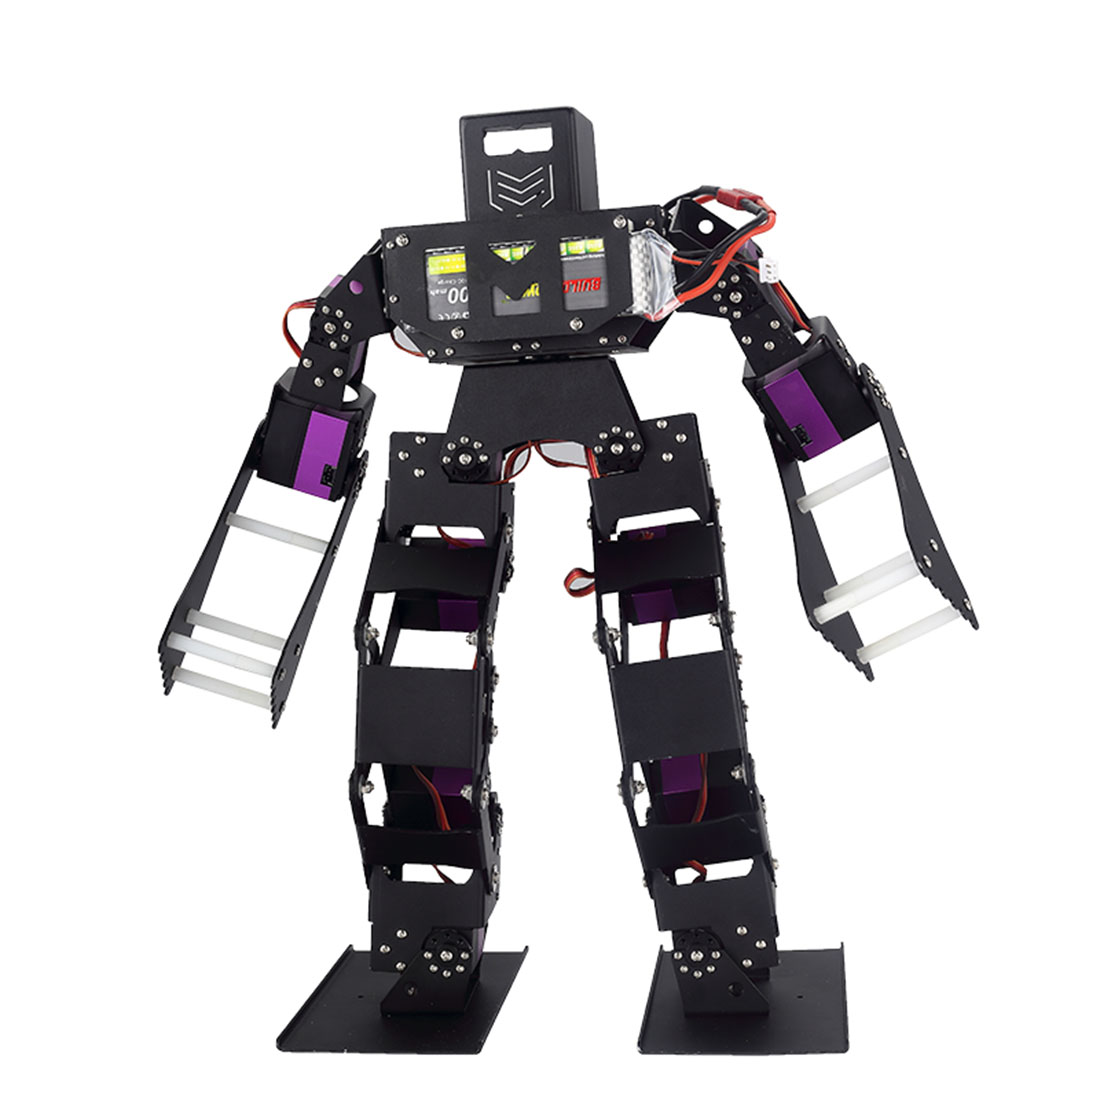 Programmable Biped Robot Boxing Competition Robot High Tech Toy DIY Stem Robot Compatible With Arduino / Microbit / STM32 / 51